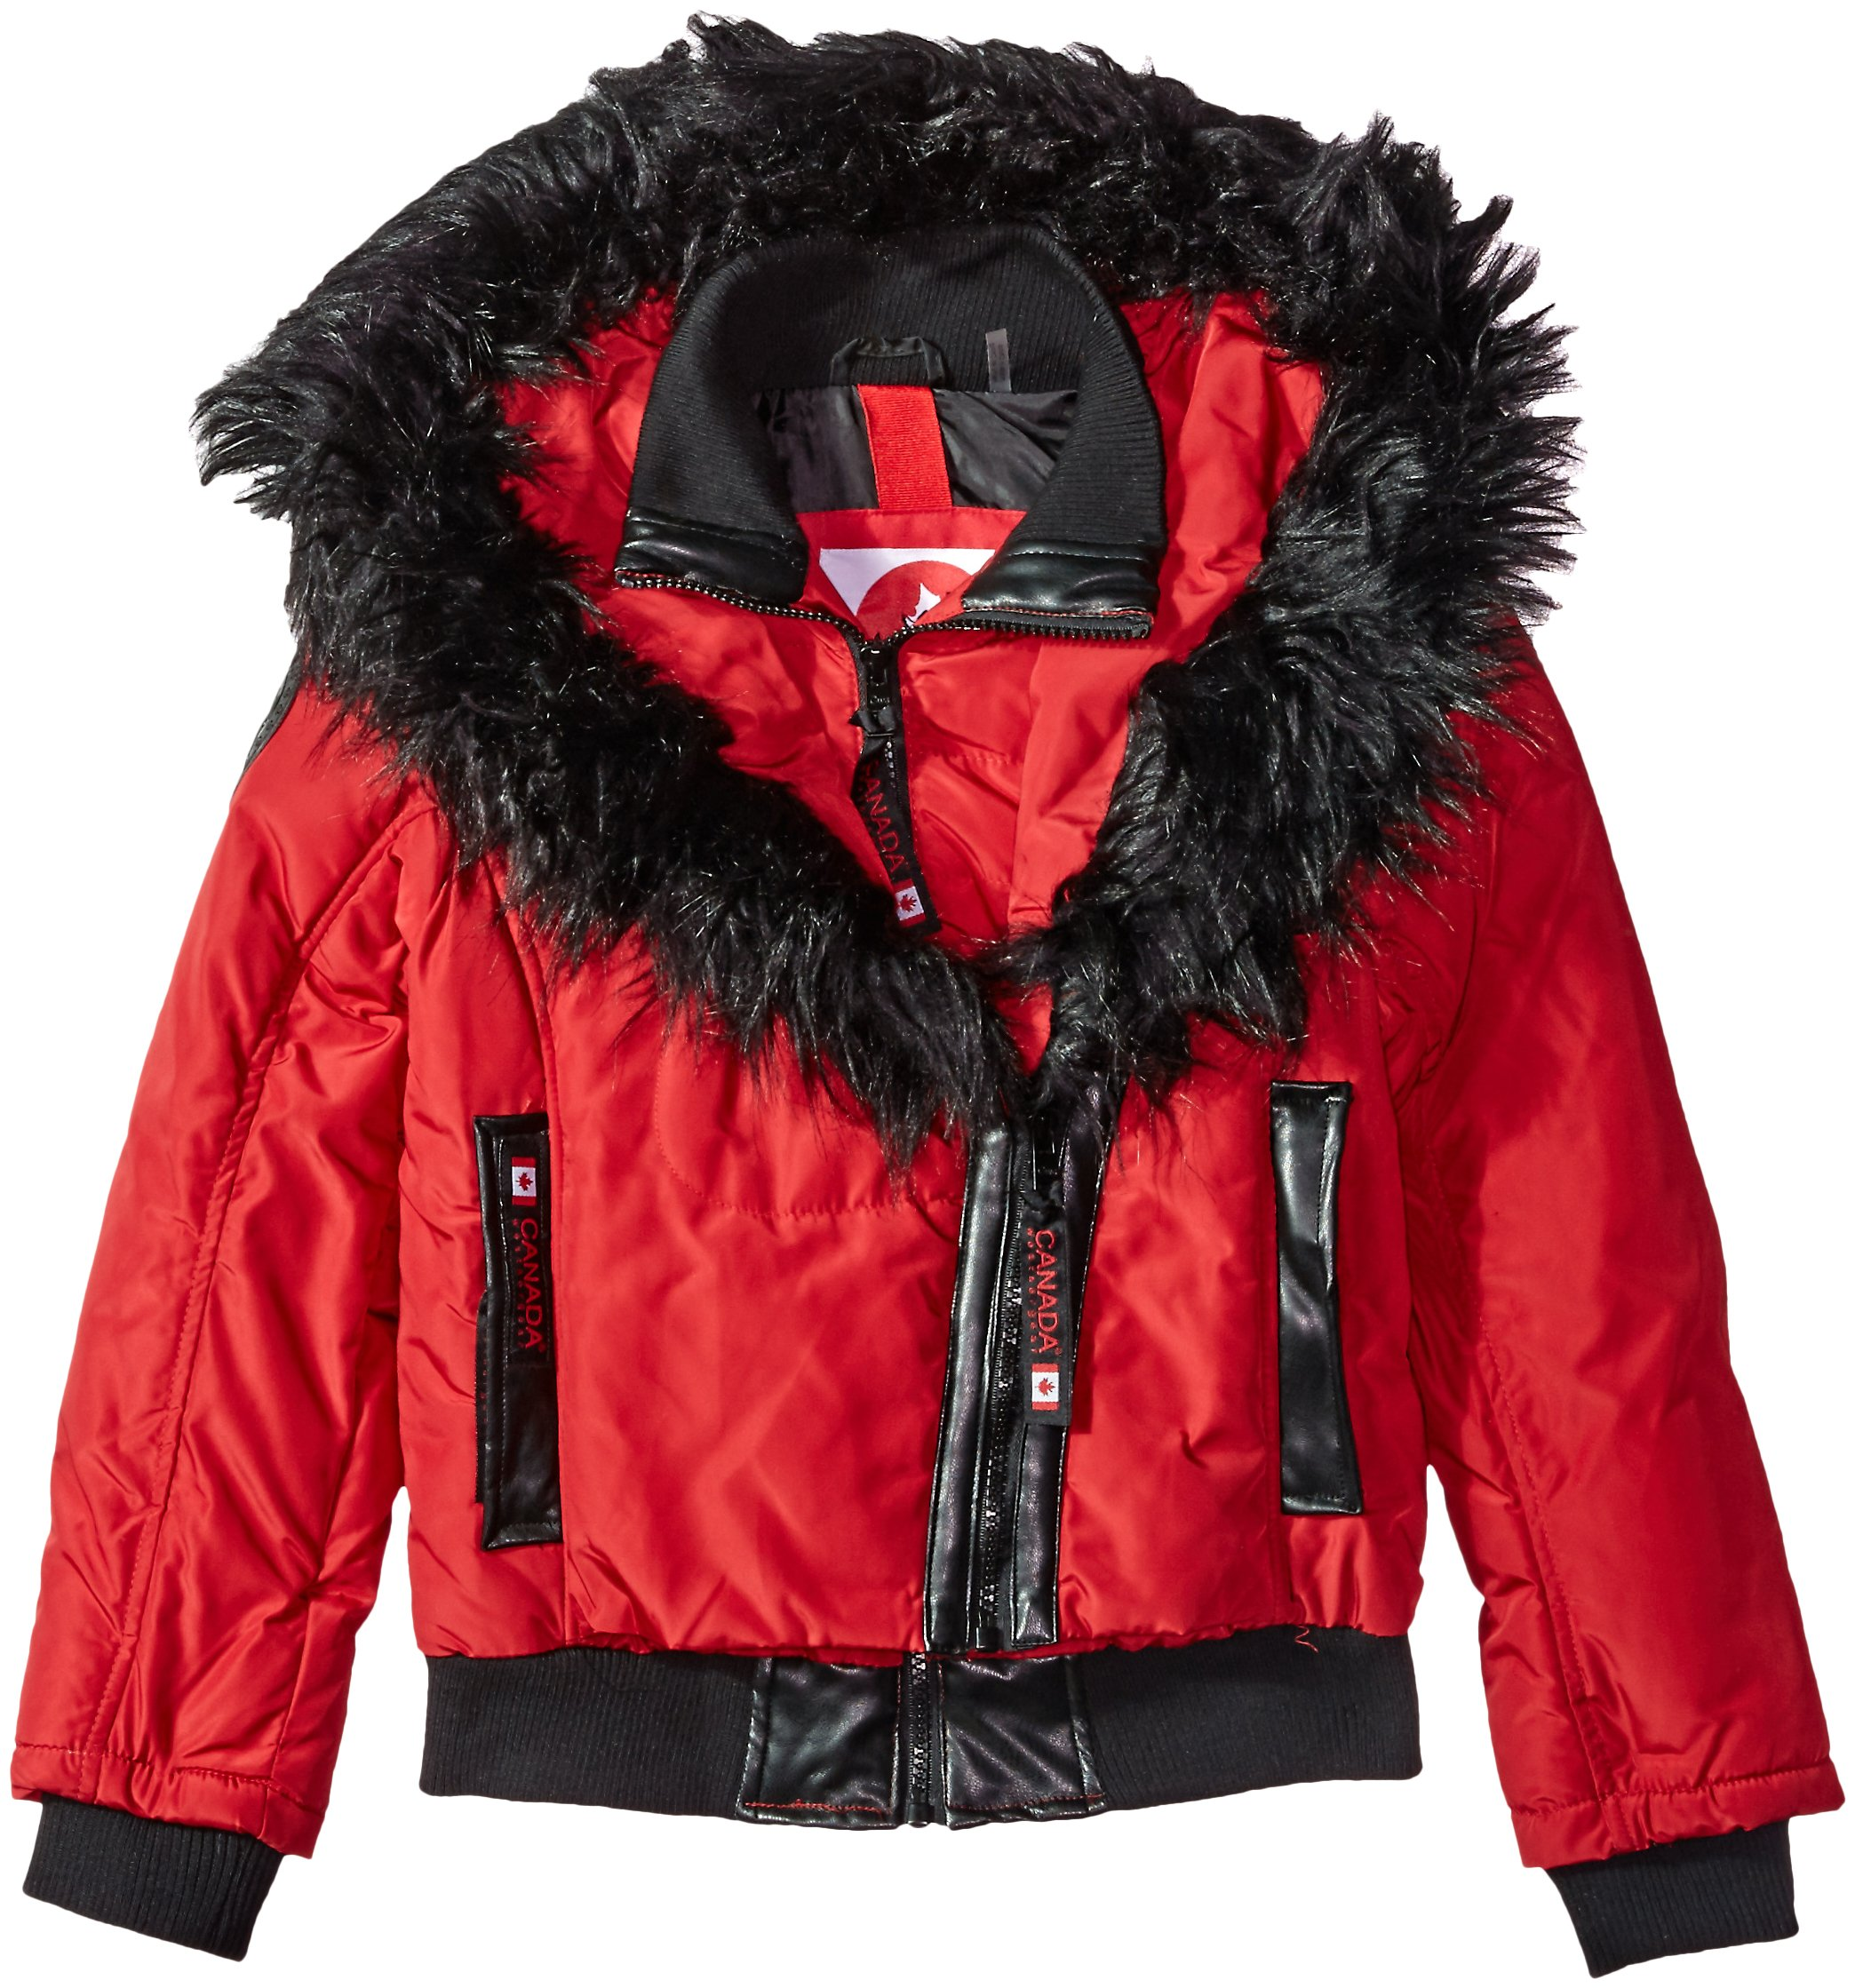 Canada Weather Gear Big Girls' Outerwear Jacket (More Styles Available), Hooded Bomber-CW050-Red, 7/8